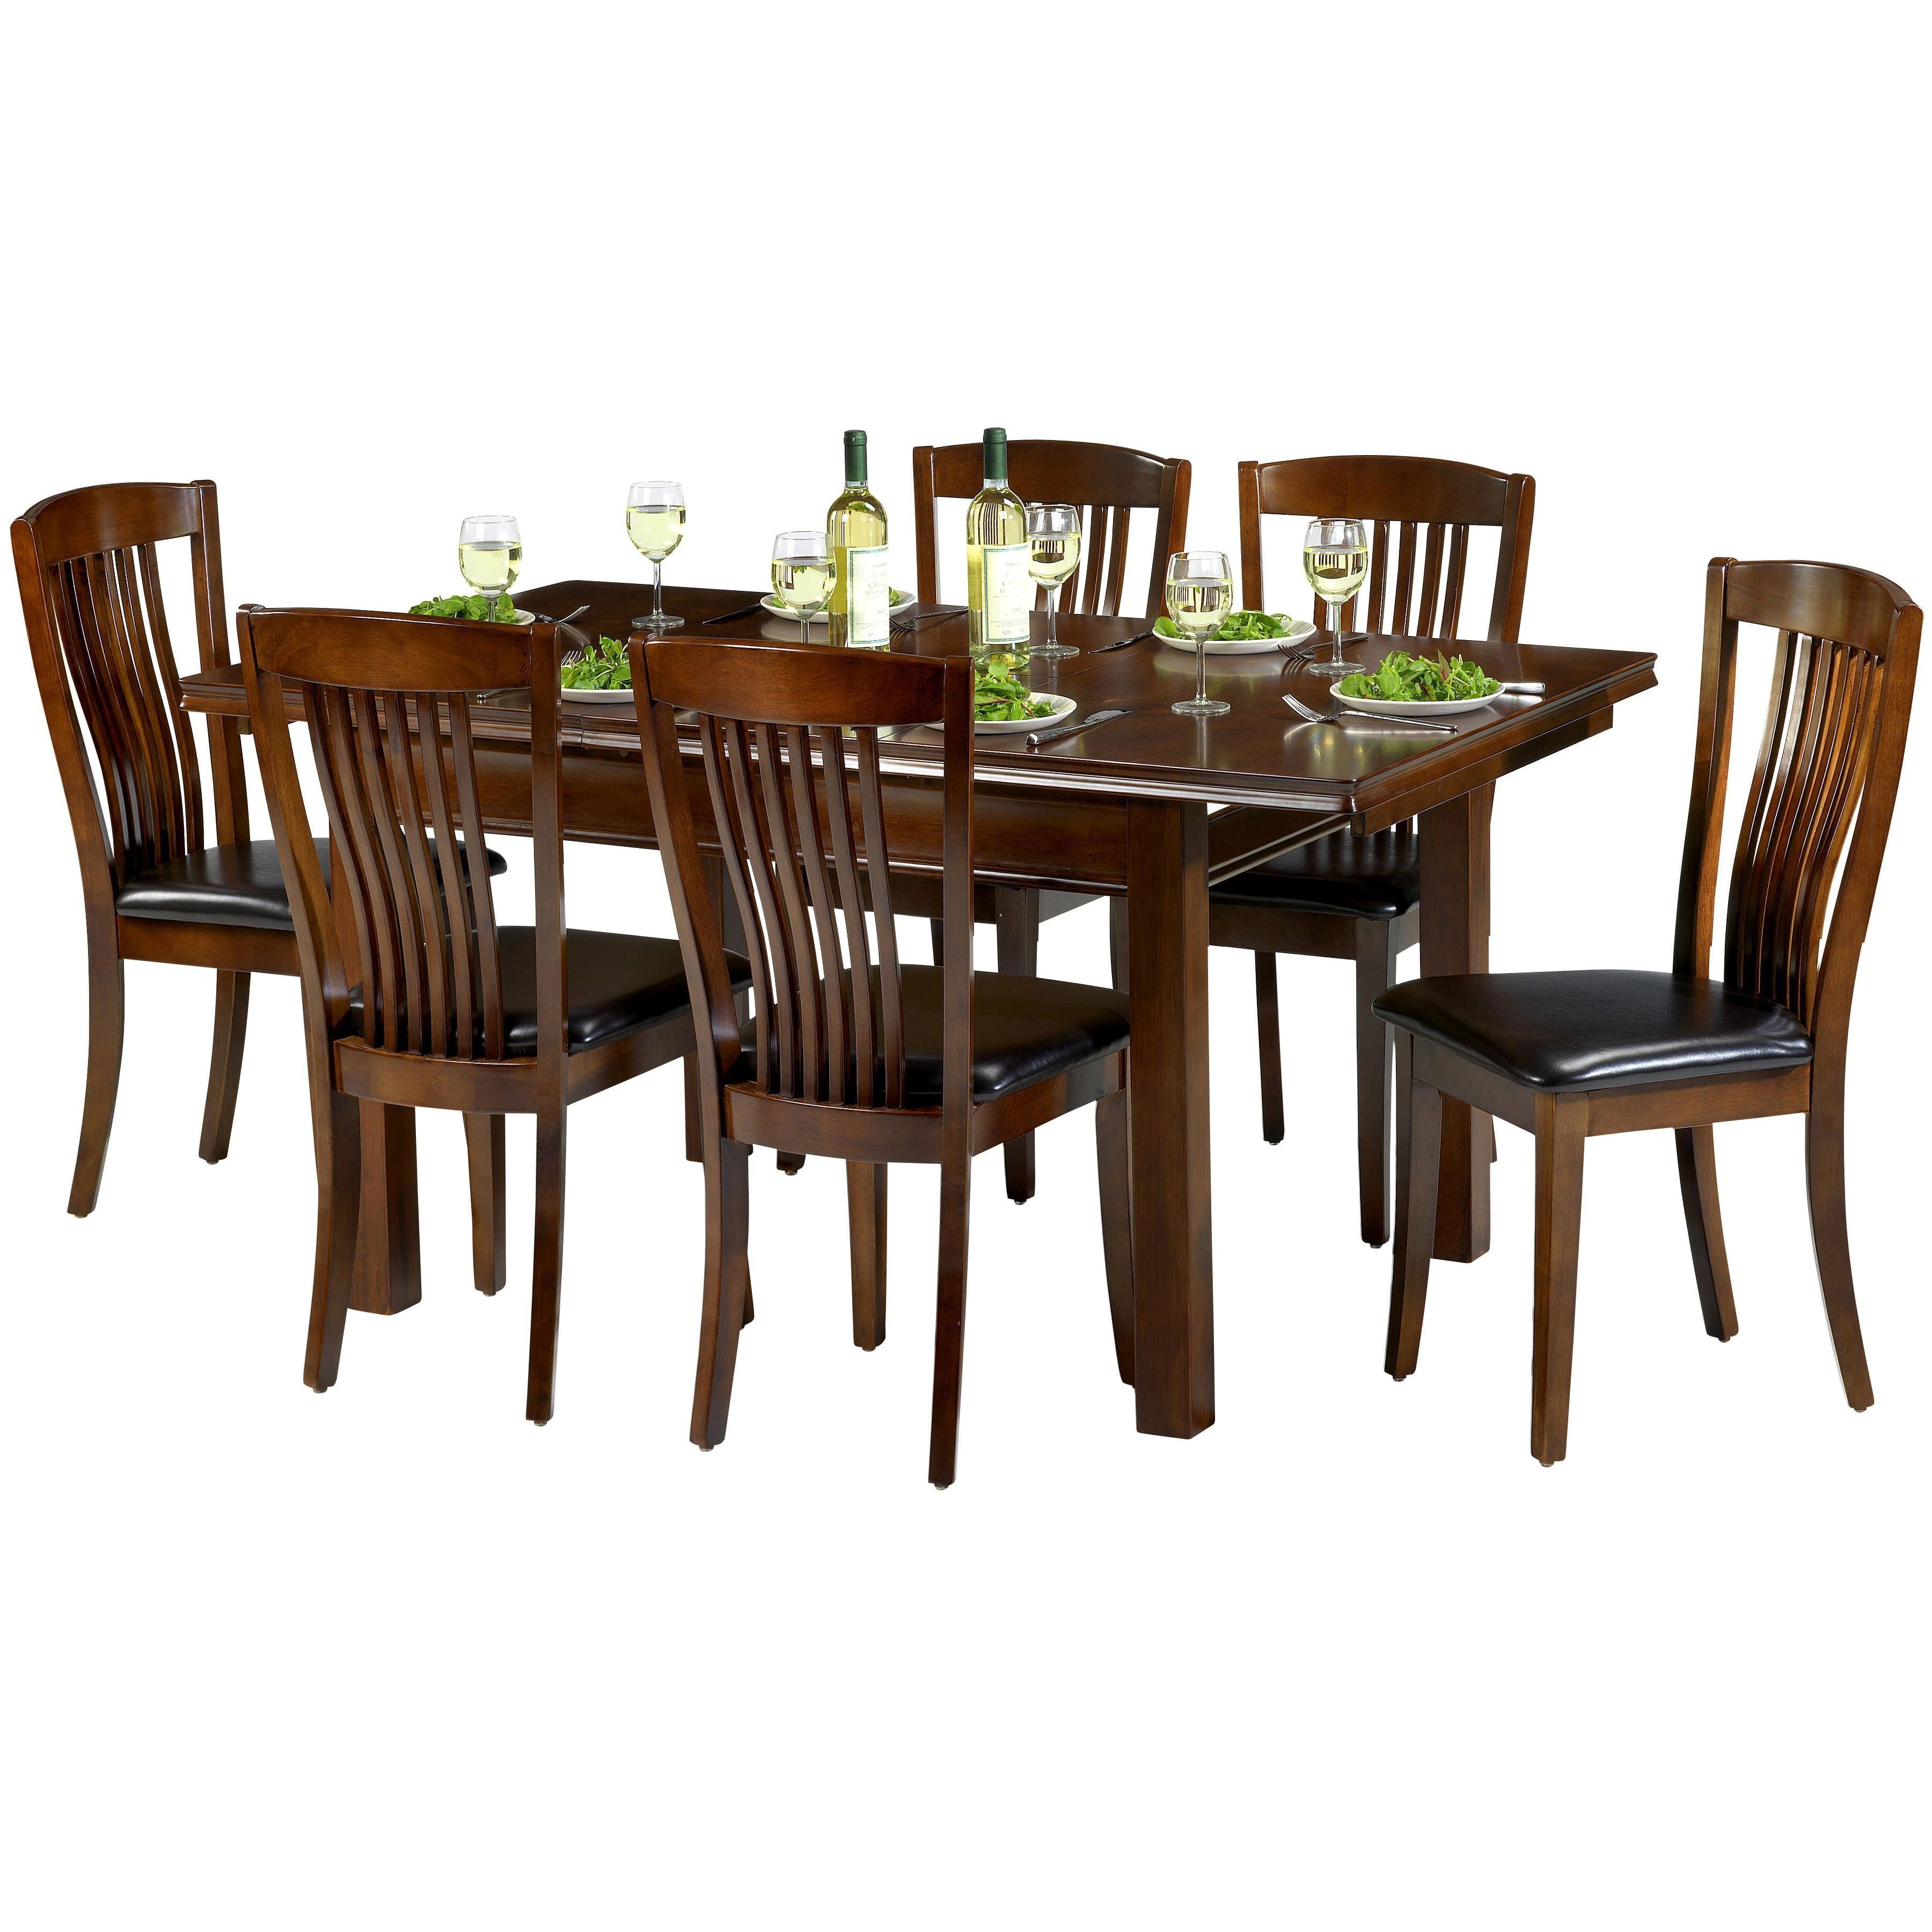 Extendable Dining Tables And 6 Chairs intended for Most Up-to-Date Mahogany Finish Extending Extendable Dining Table And Chair Set With